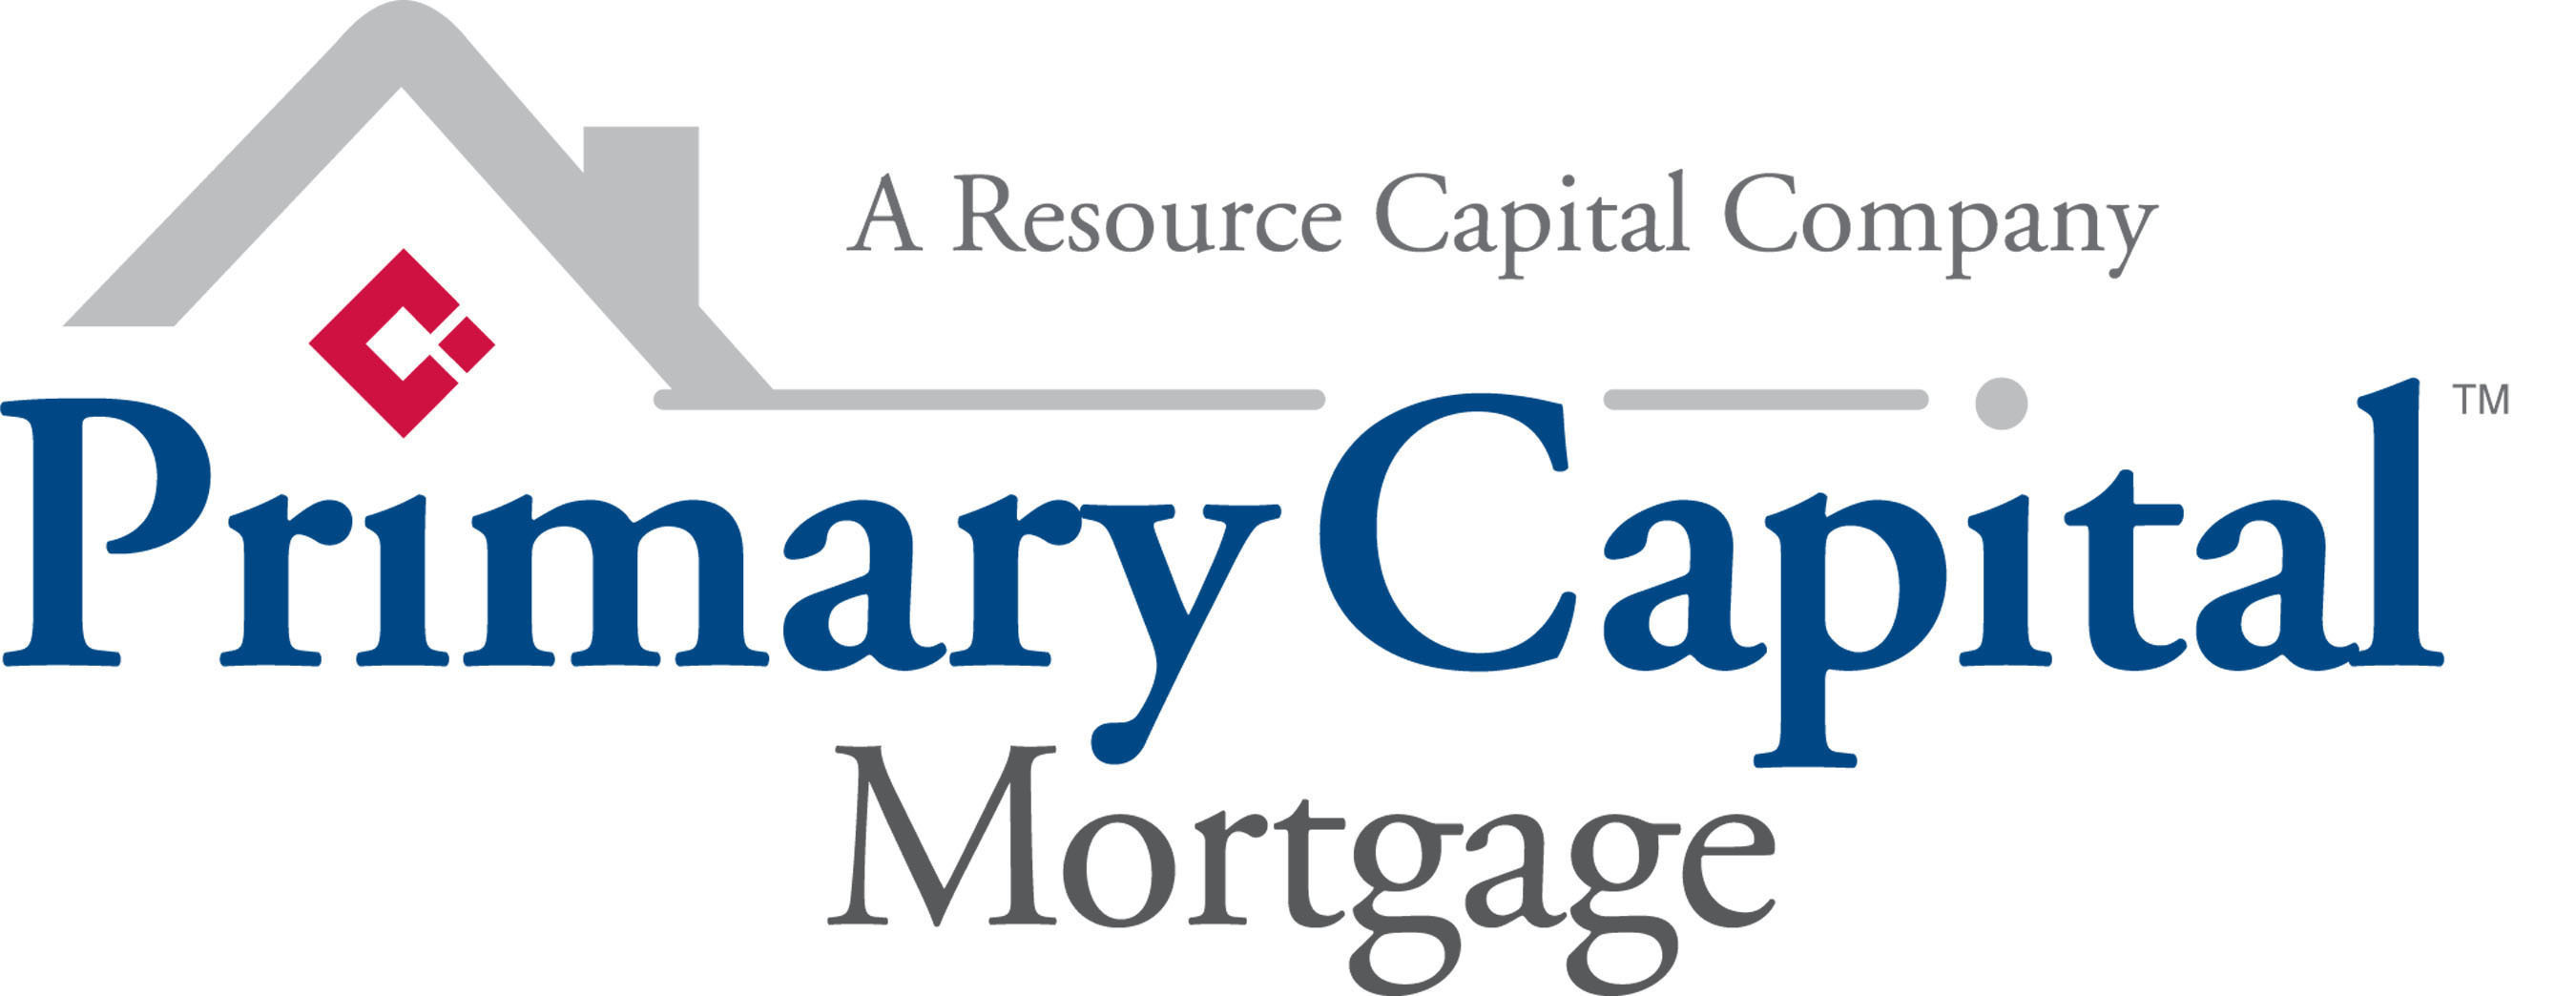 Primary Capital Mortgage Welcomes Debbie Turner As Chief Compliance Officer